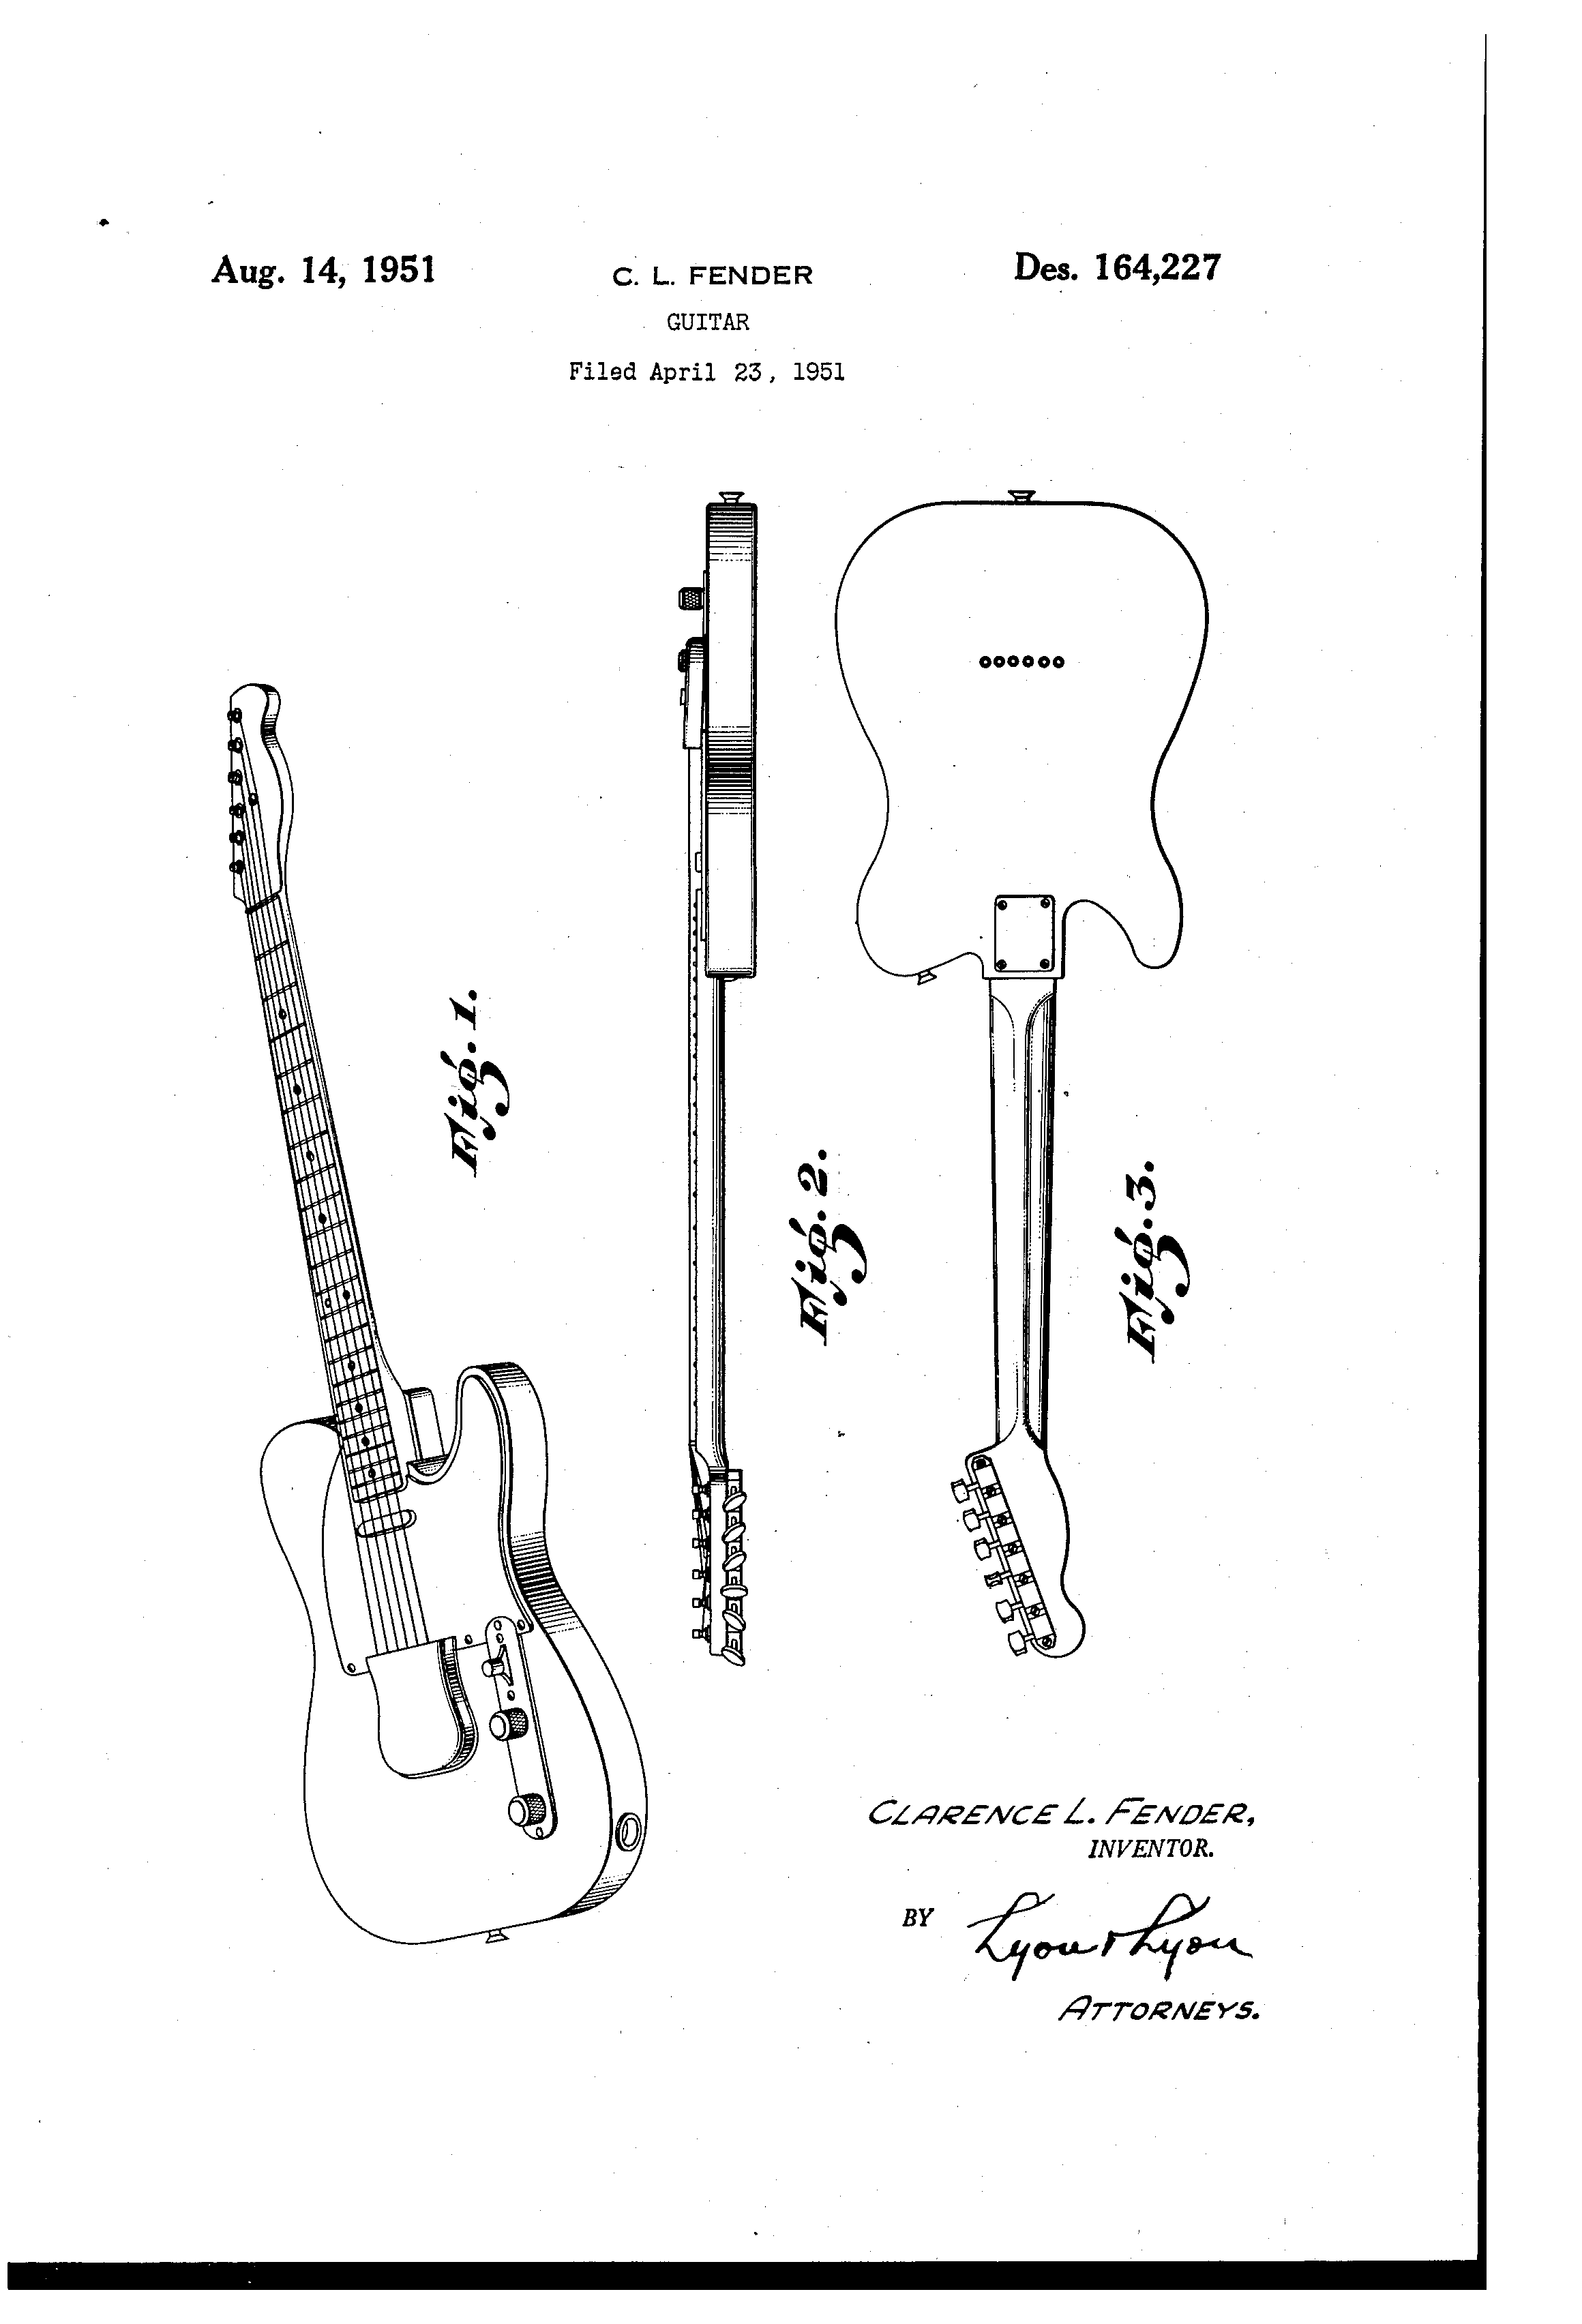 Patent Usd164227 Fender Guitar Google Patents In 2018 72 Telecaster Deluxe Wiring Diagram